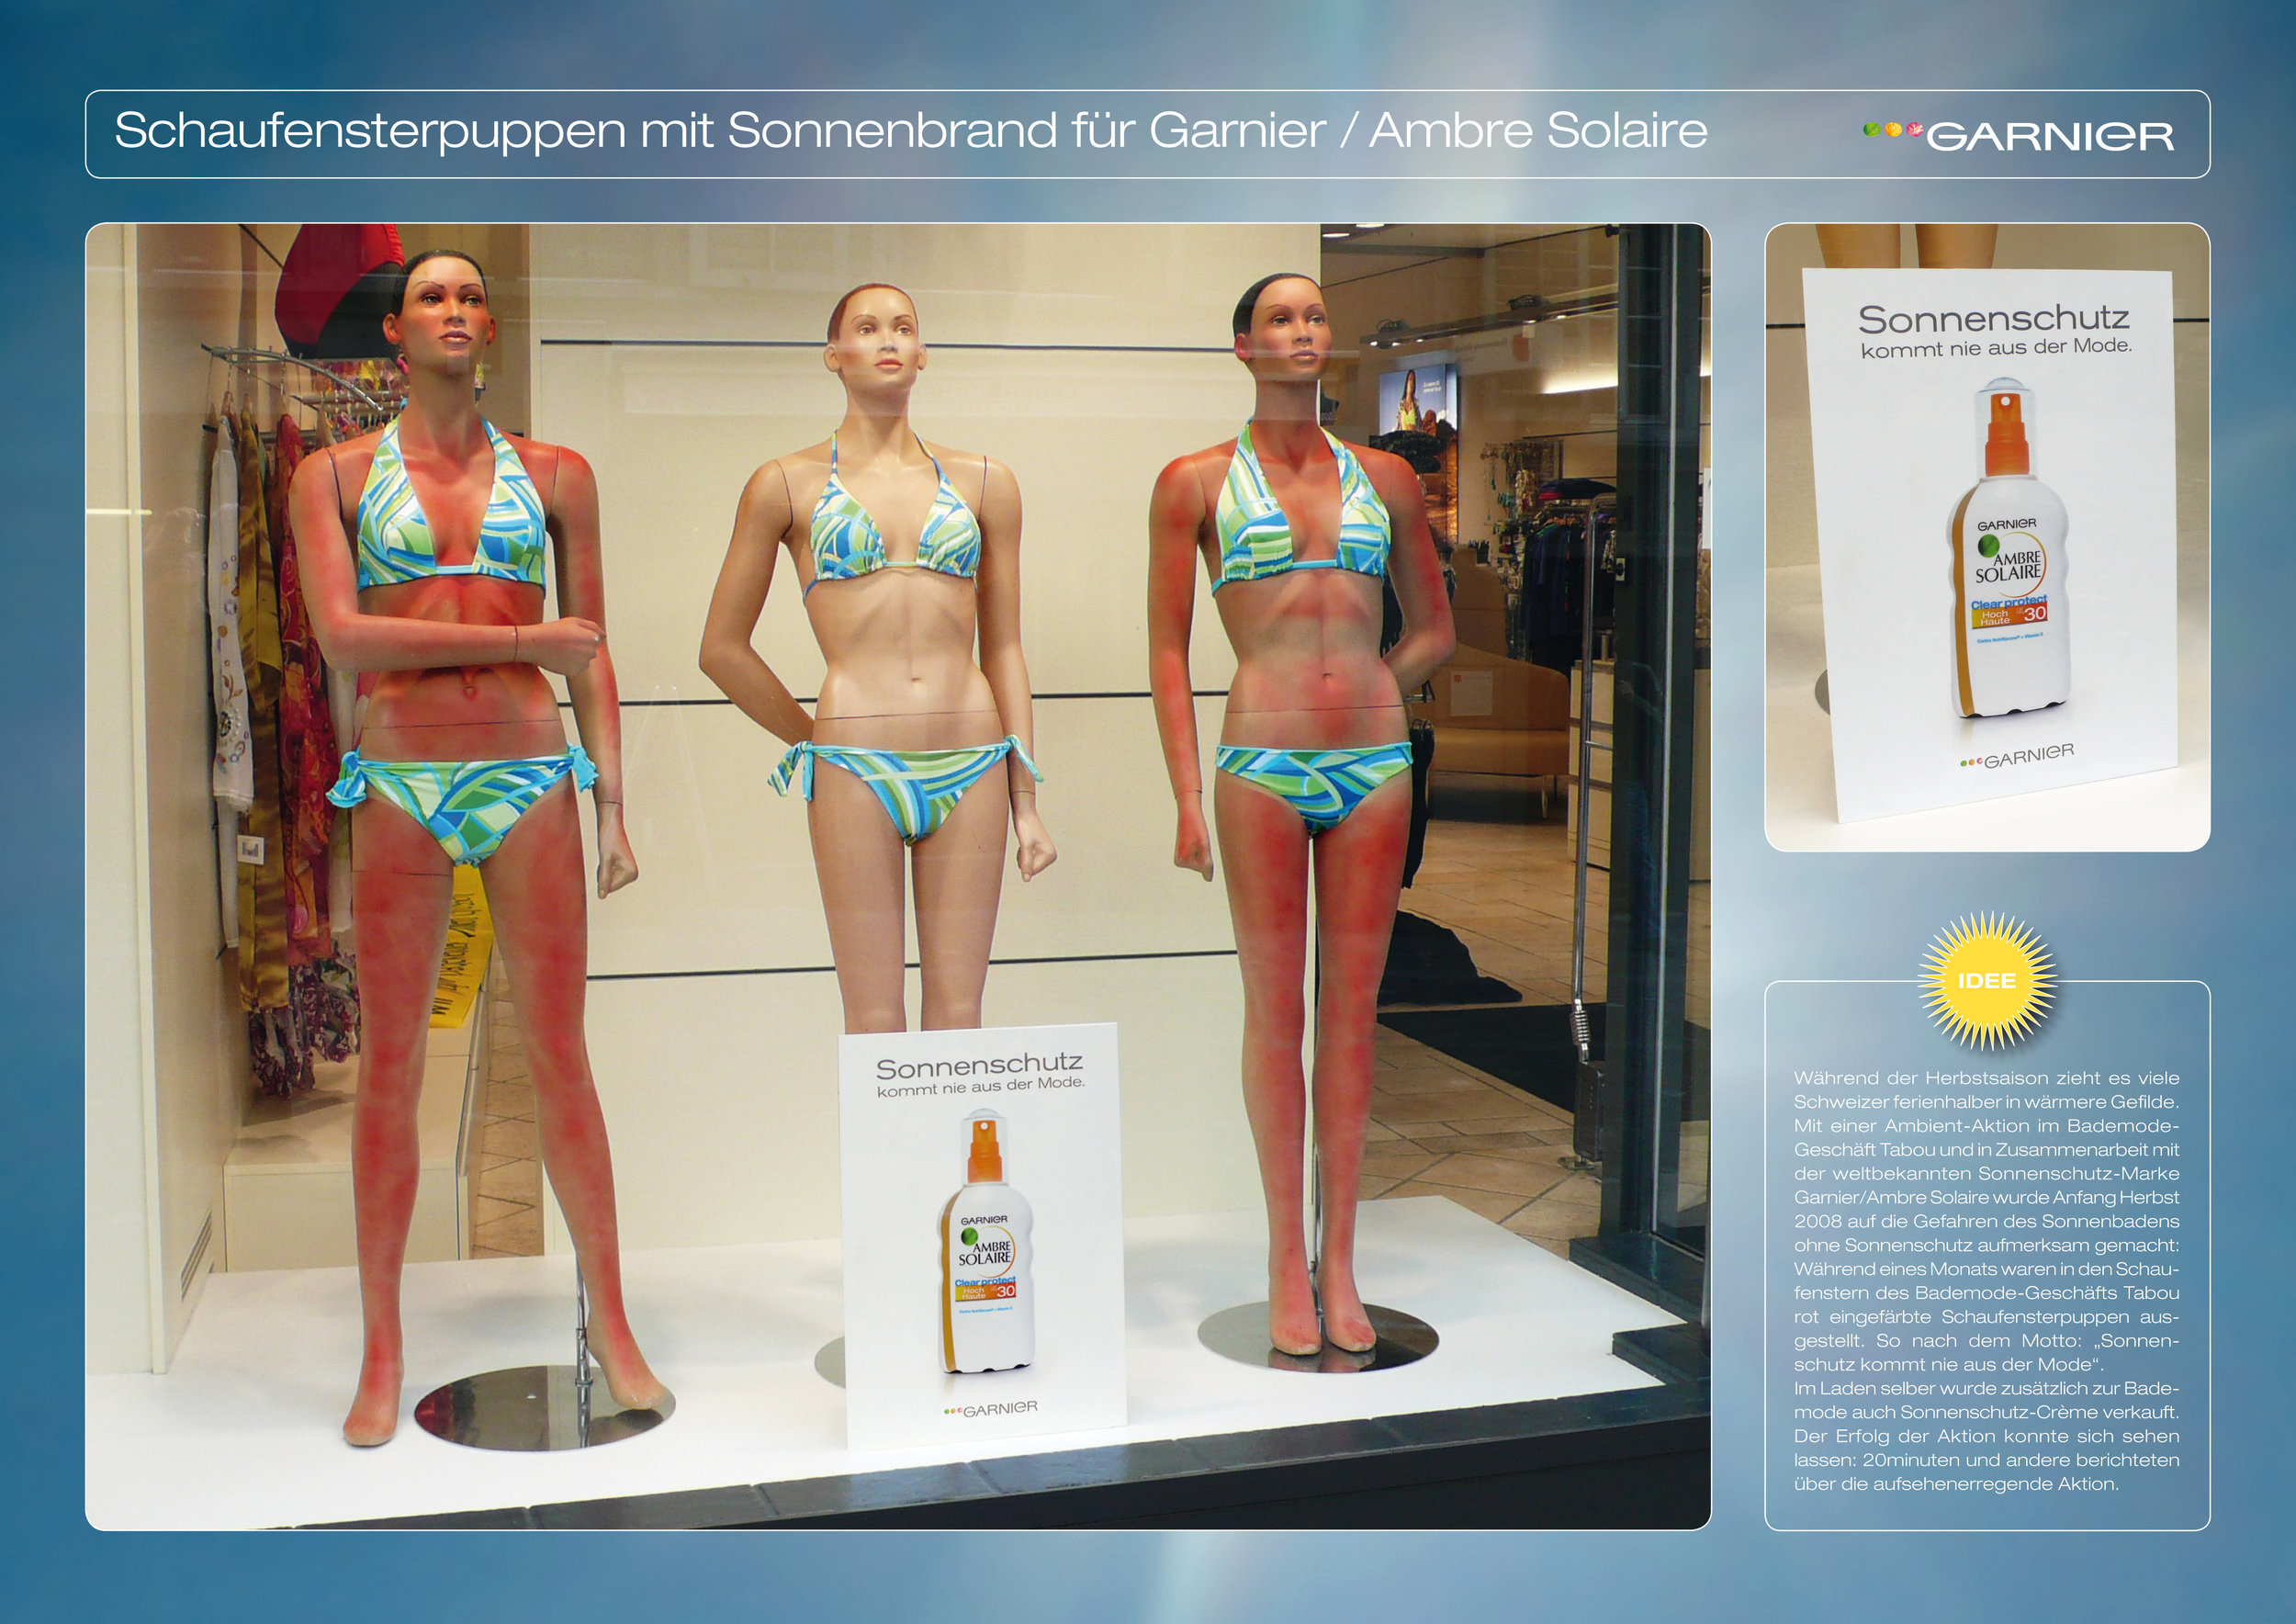 Garnier_Sunburned_Mannequins_Deutsch.jpg